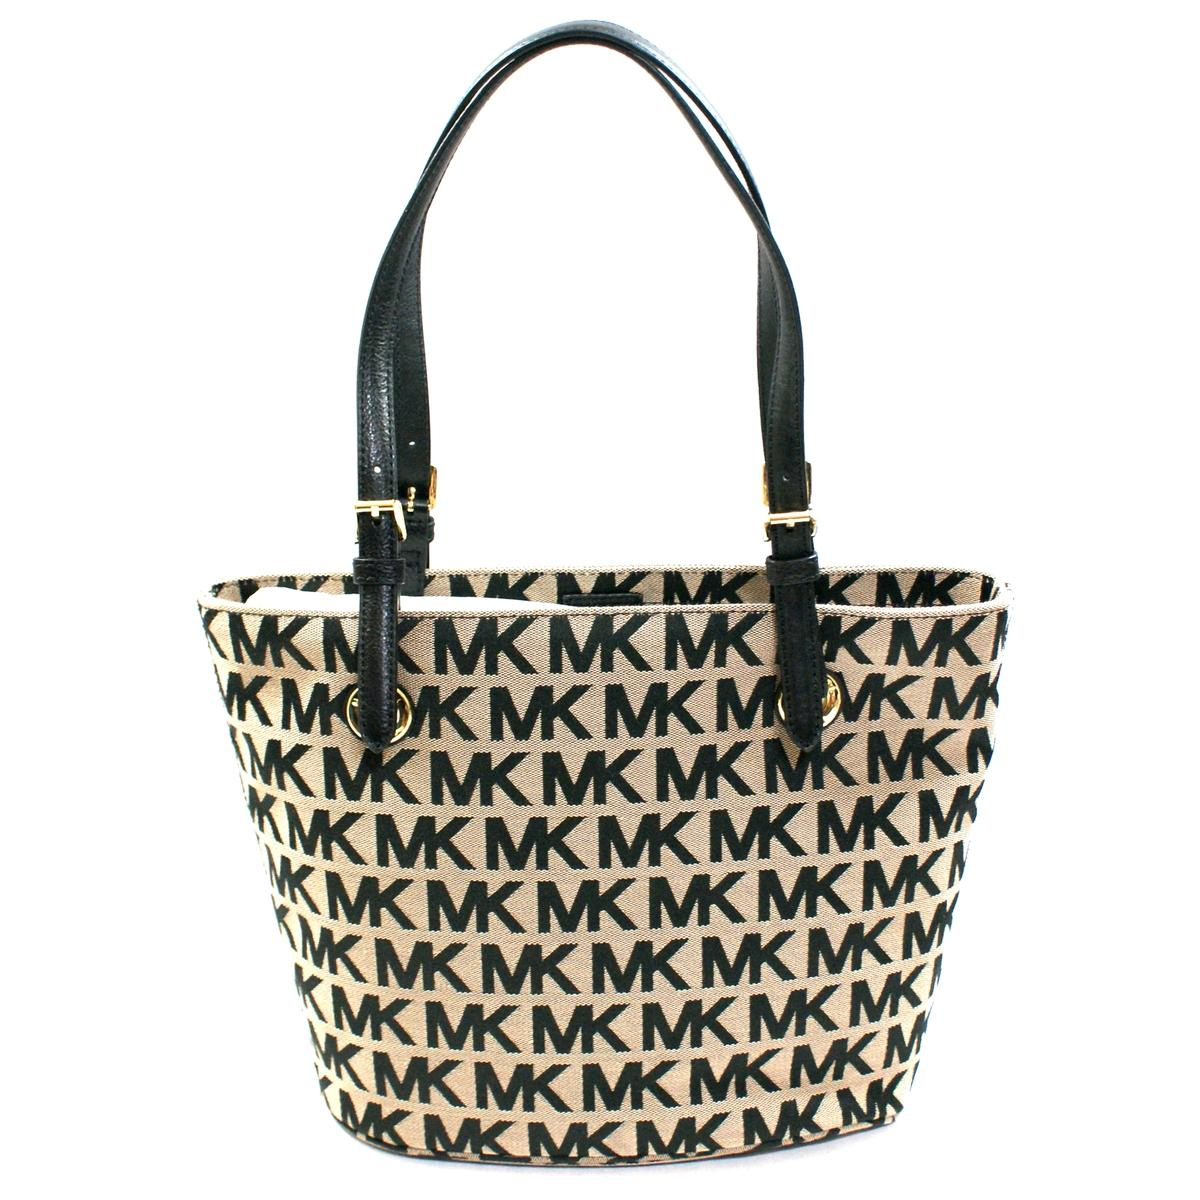 Find a designer bag with the Farfetch women's bags sale. Our edit brings together a range of shapes and sizes from both new and established brands. Michael Michael Kors. Mercer Studio tote. £ 20% off £ More like this. Size (Standard) One Size. Cabas. triangle shaped tote.